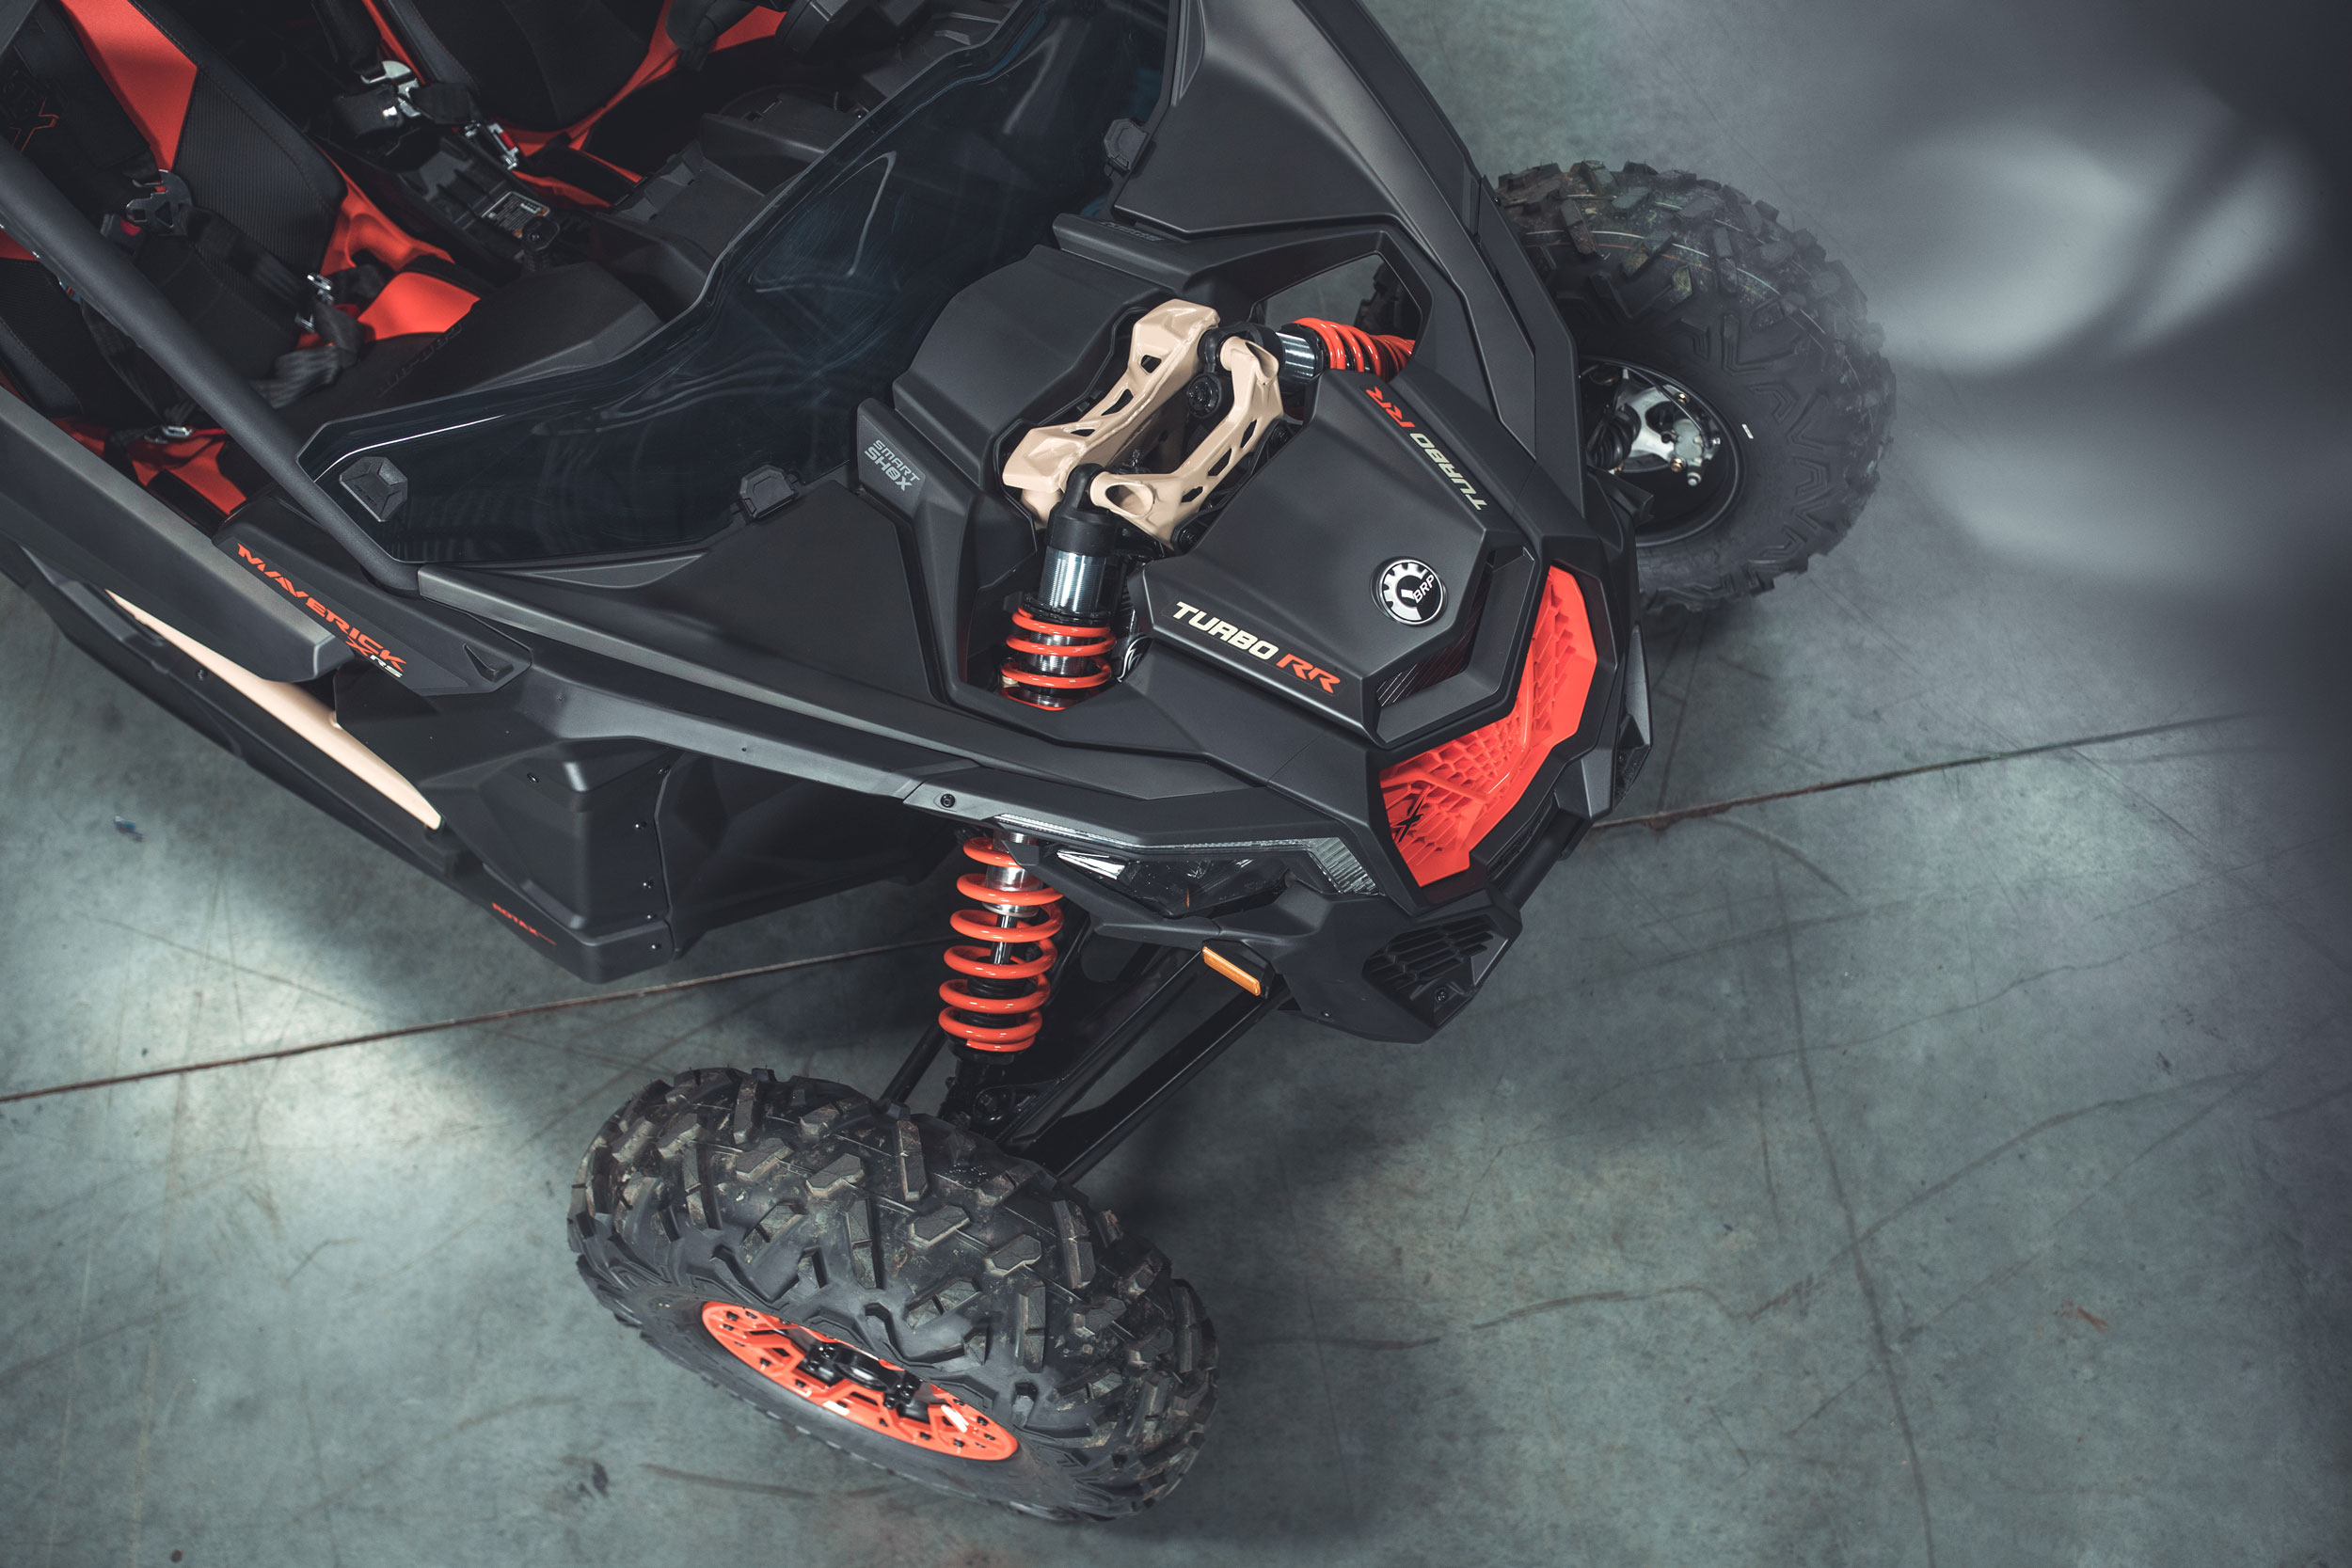 Technologie de suspension semi-active tout-terrain Can-Am